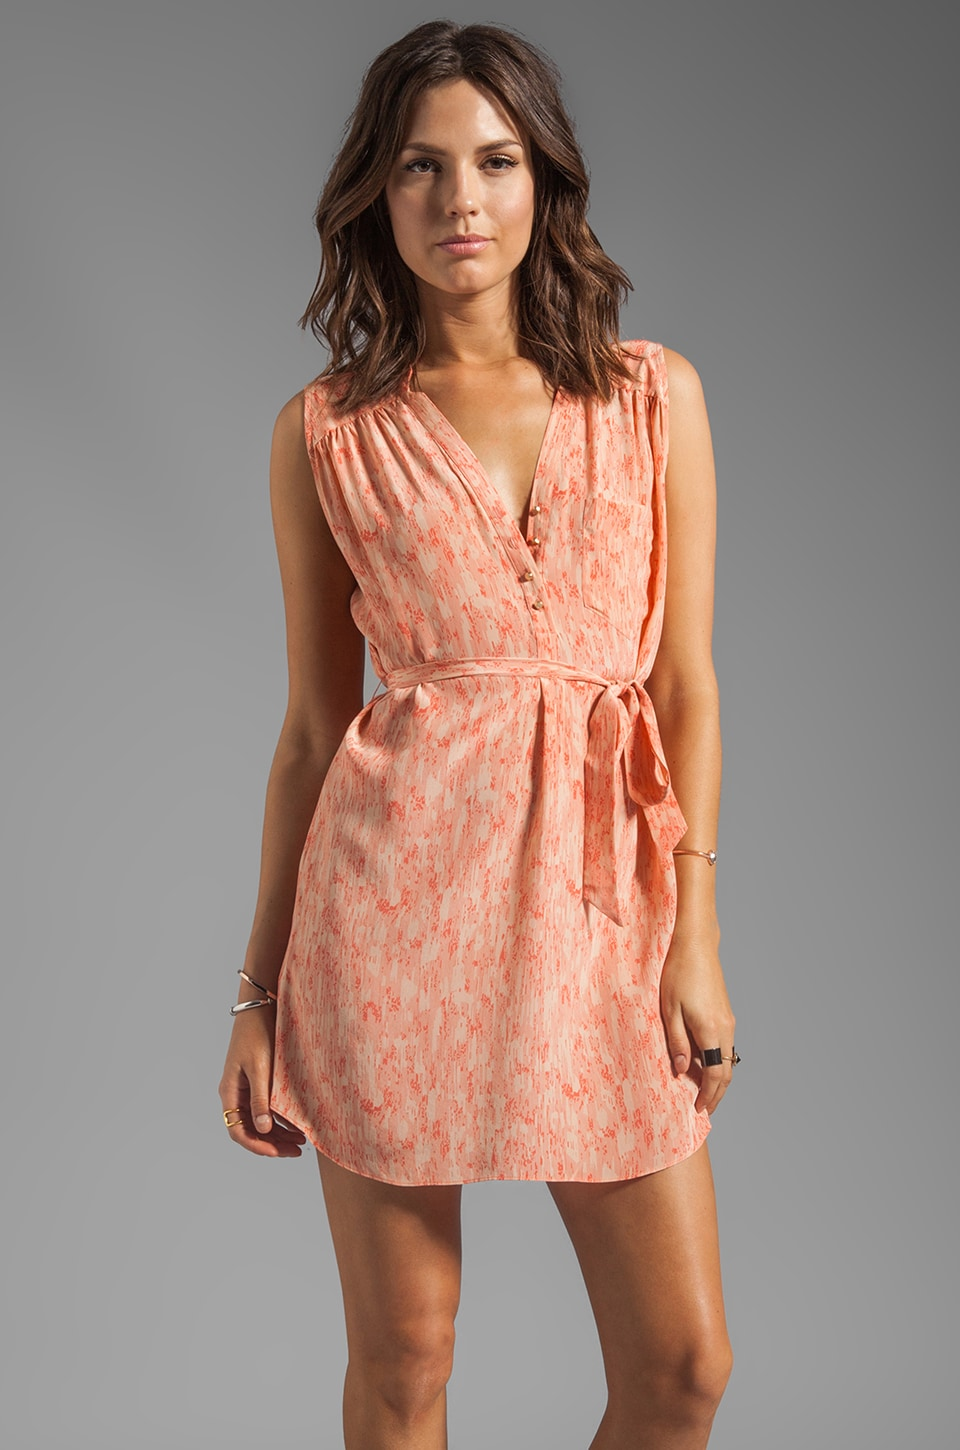 HEARTLOOM Mina Dress in Coral